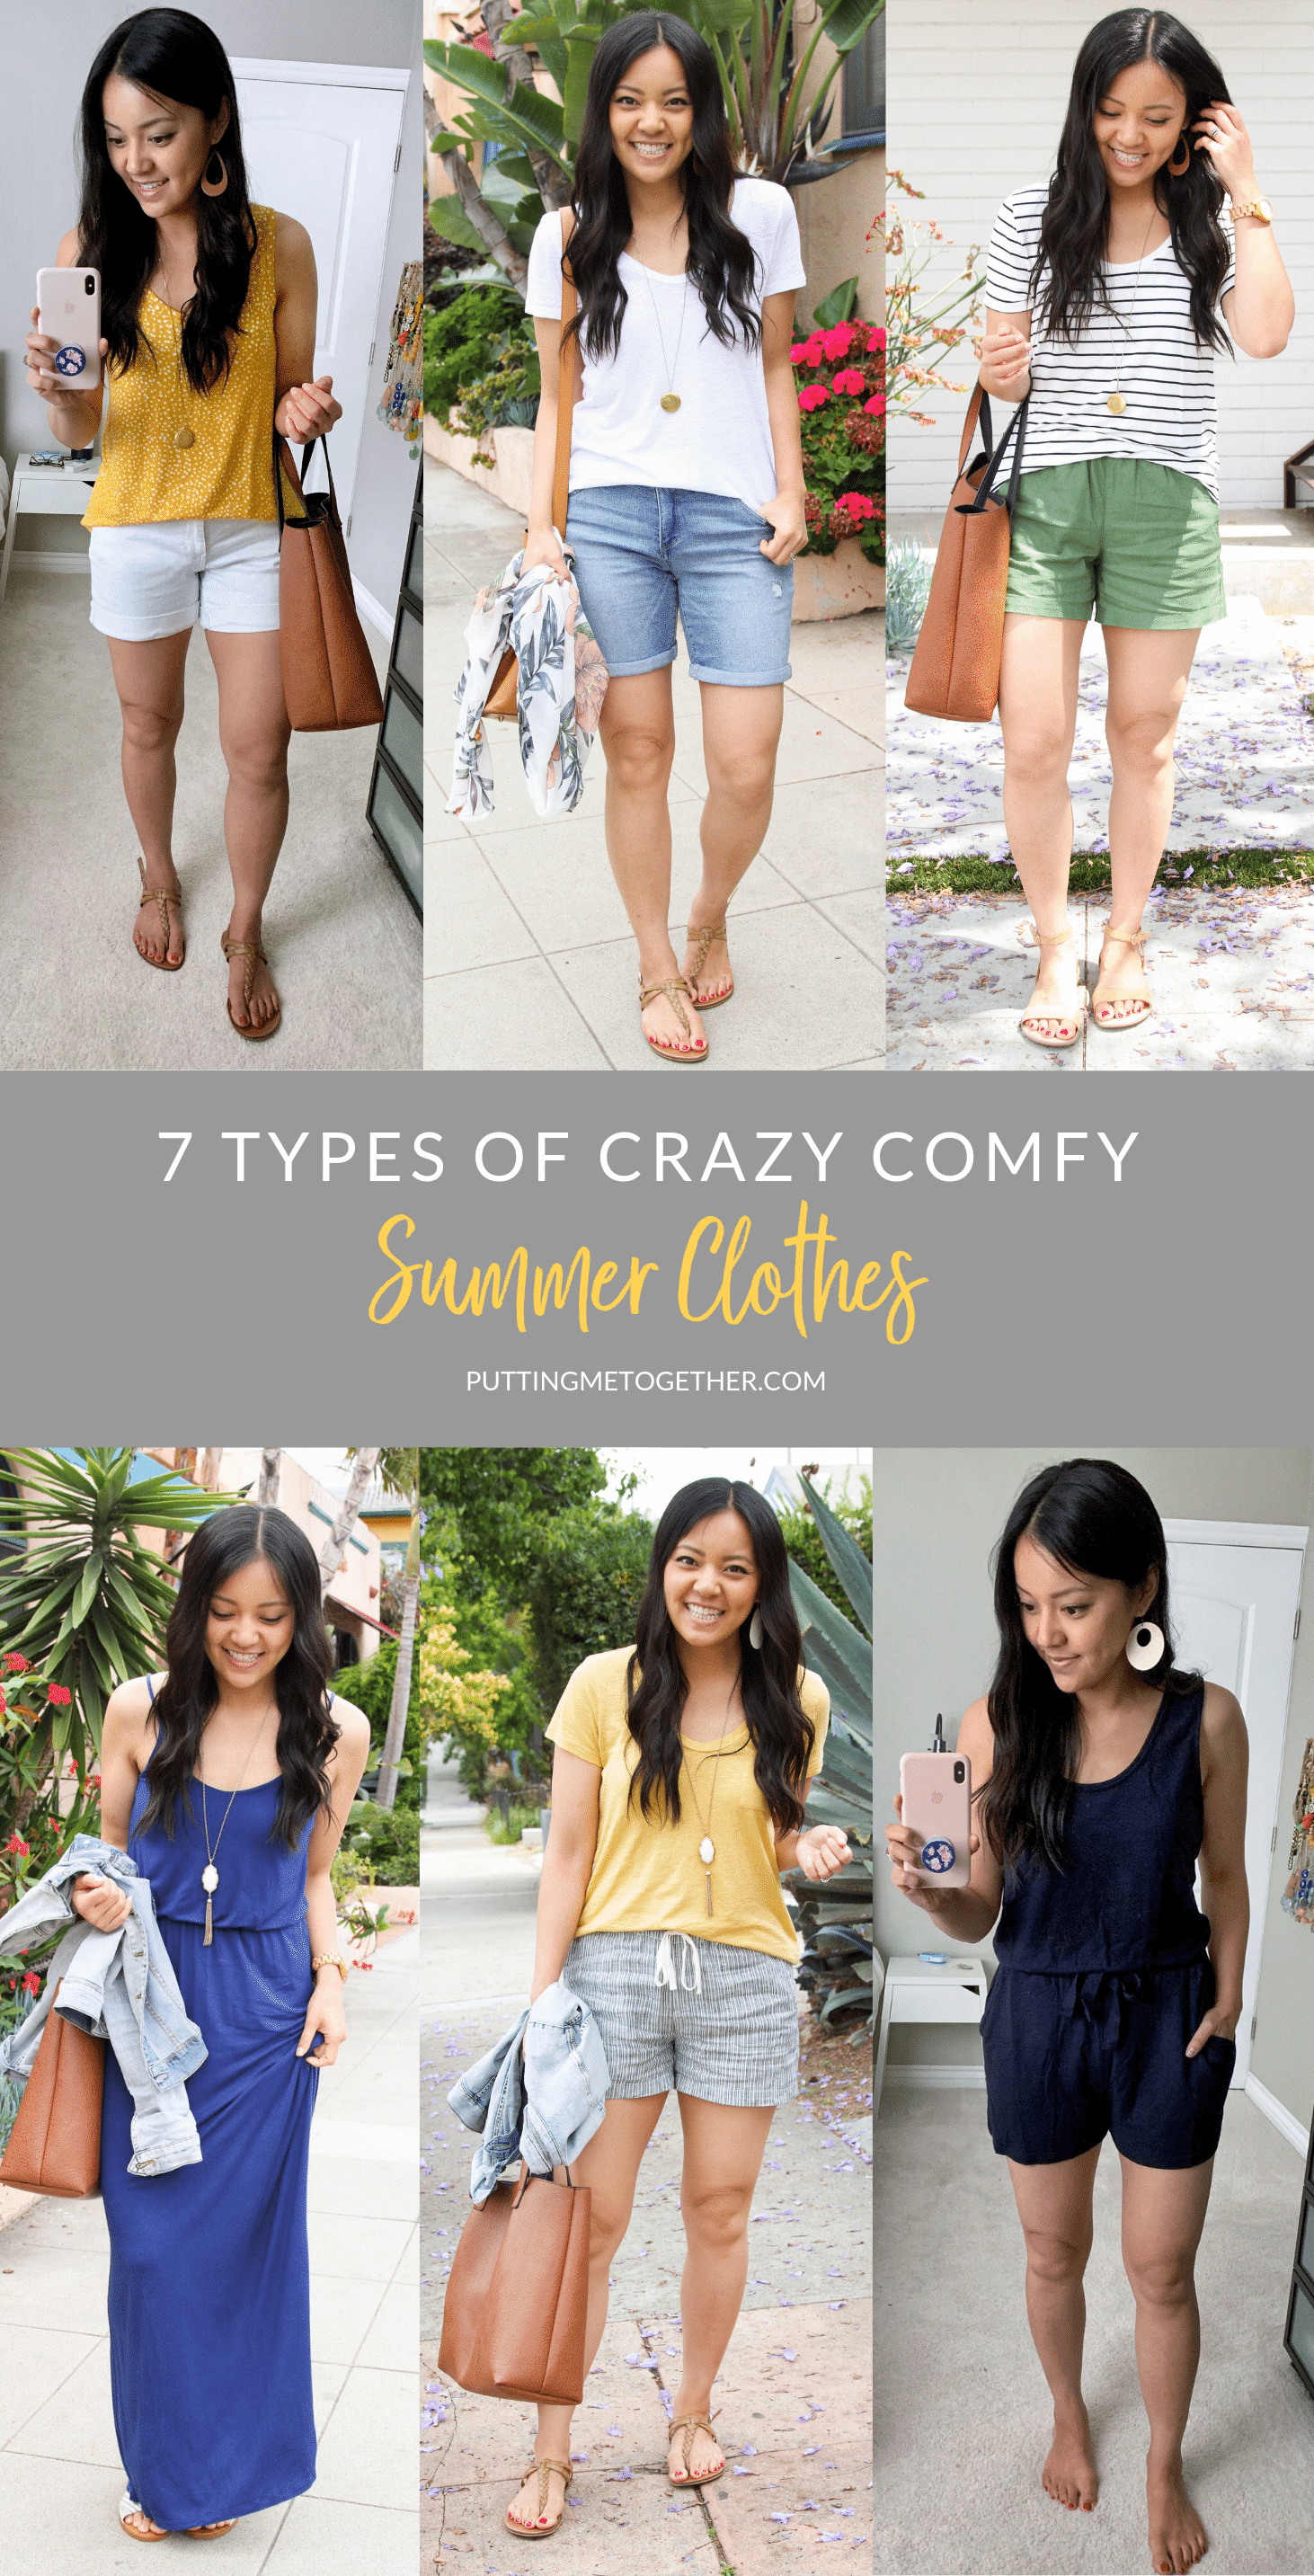 7 Types of crazy comfy summer clothes